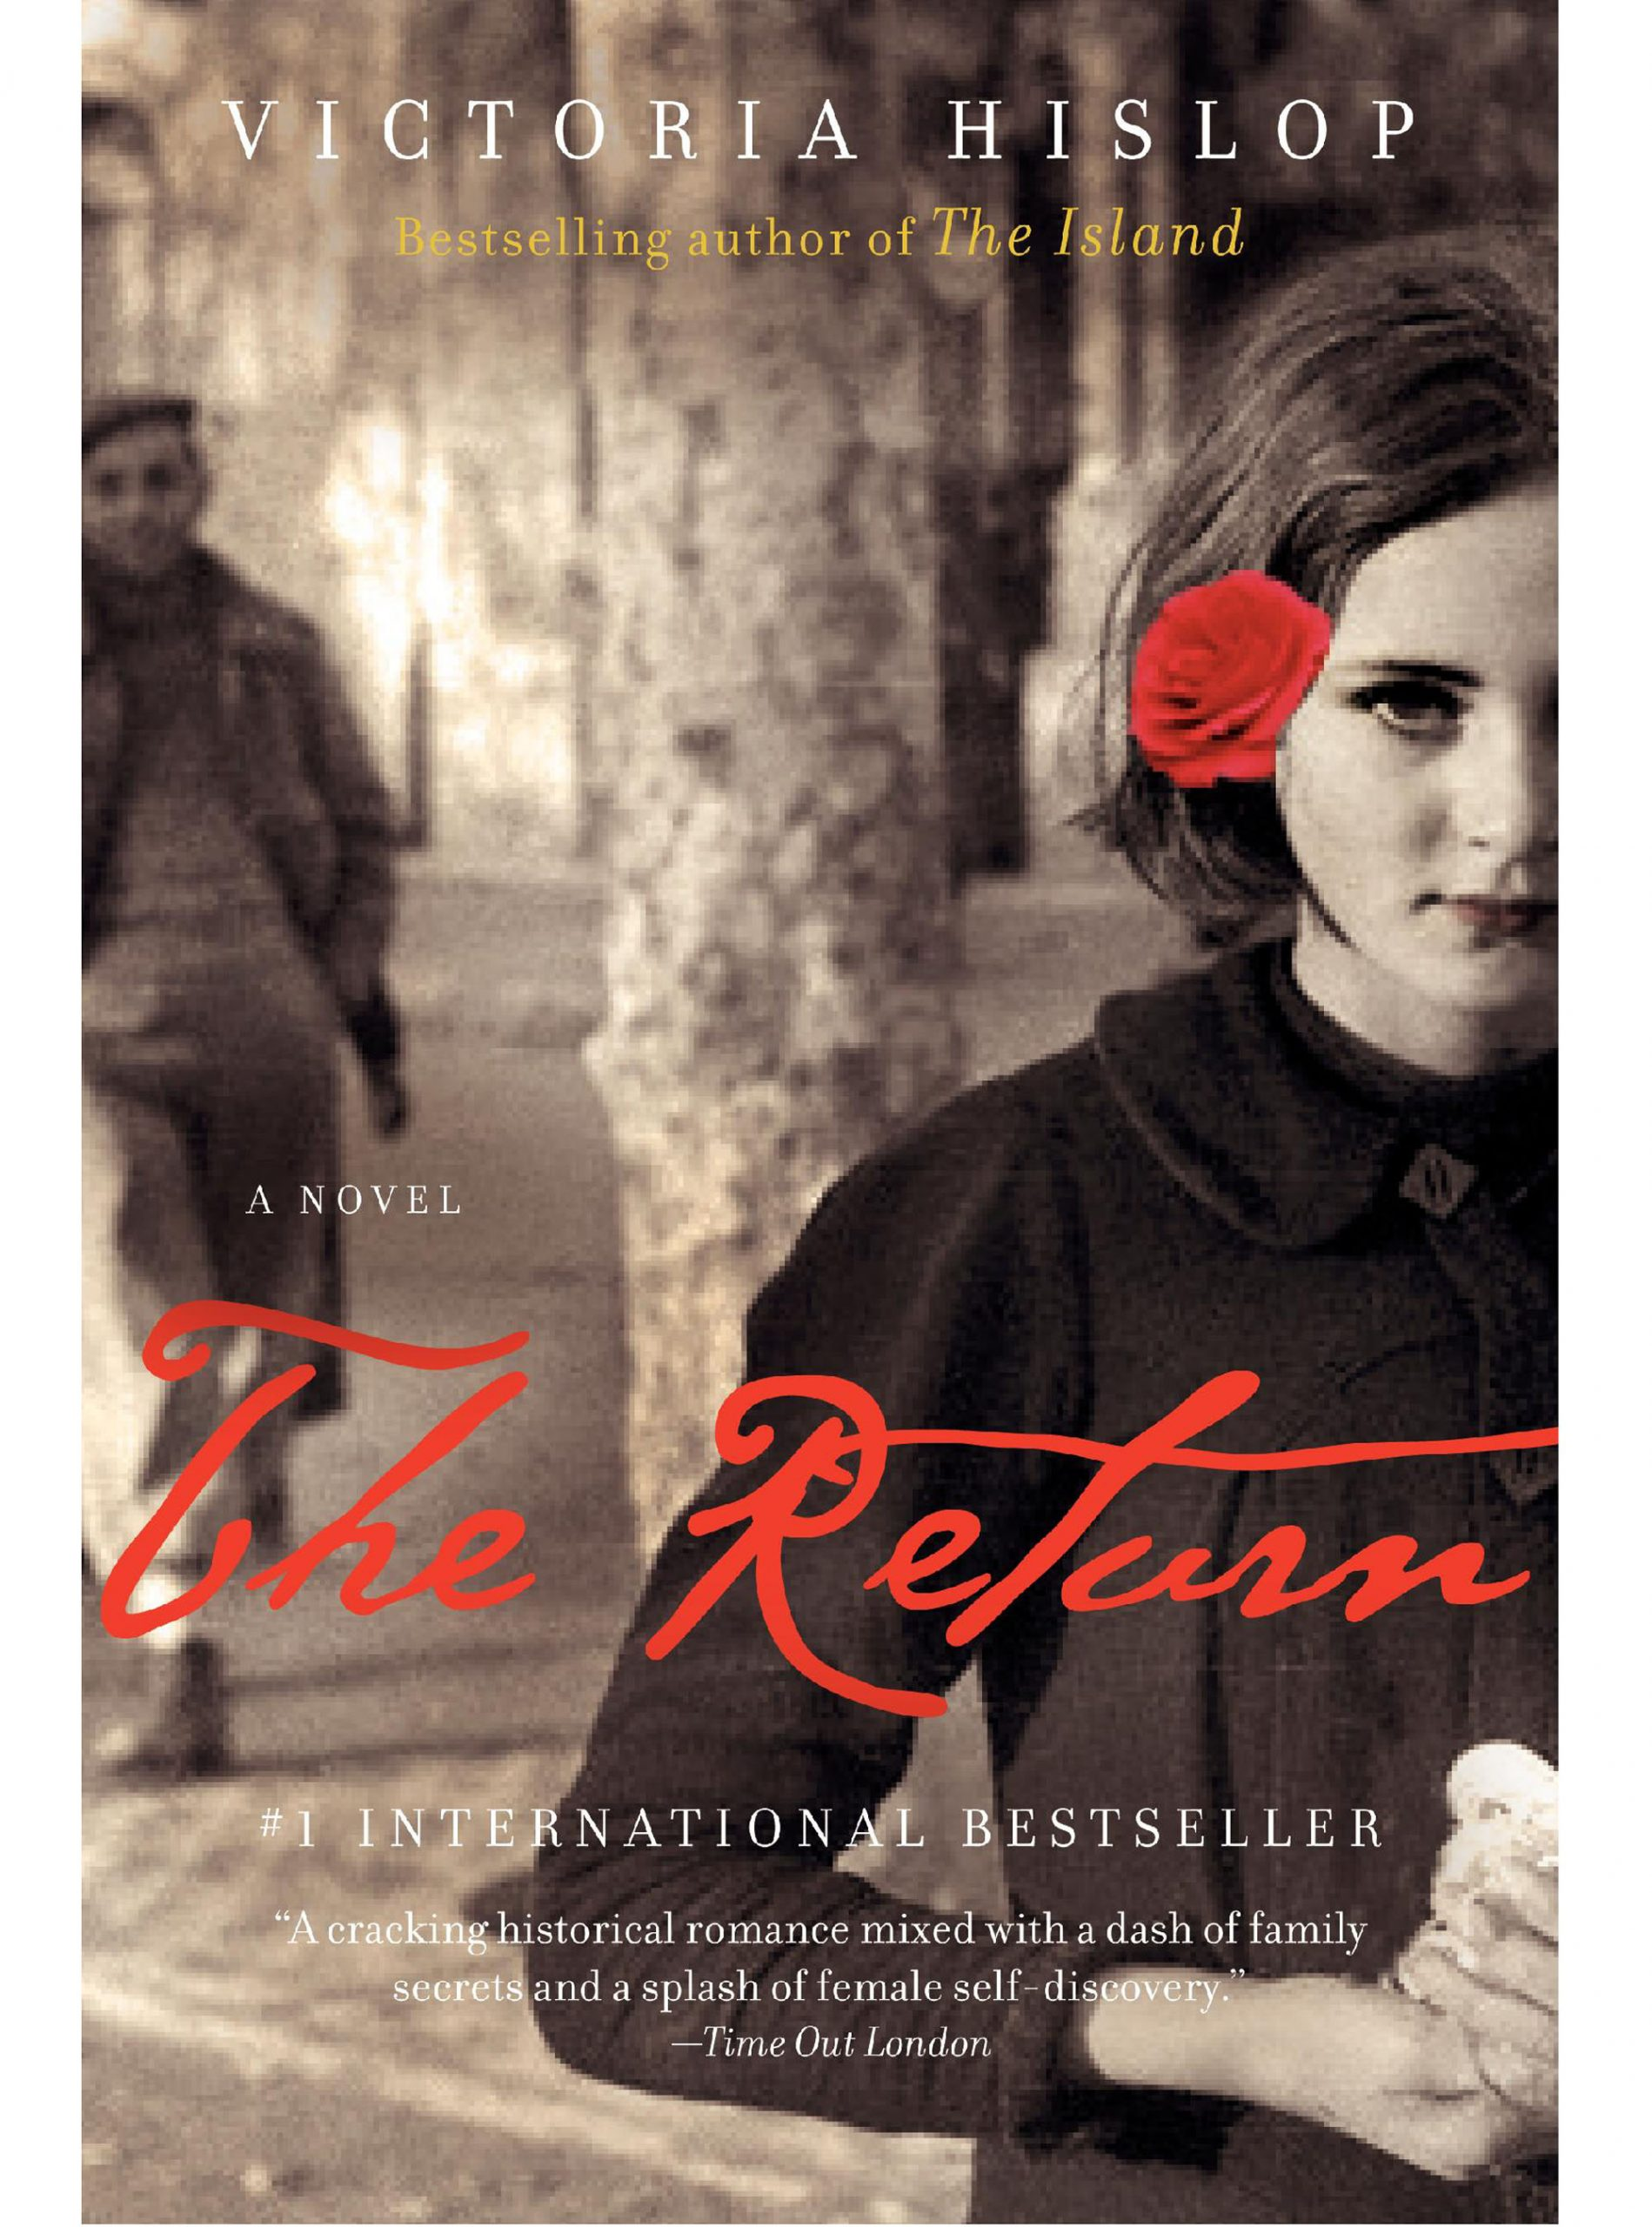 The Return by Victoria Hislop-books-book reviews-woman and home